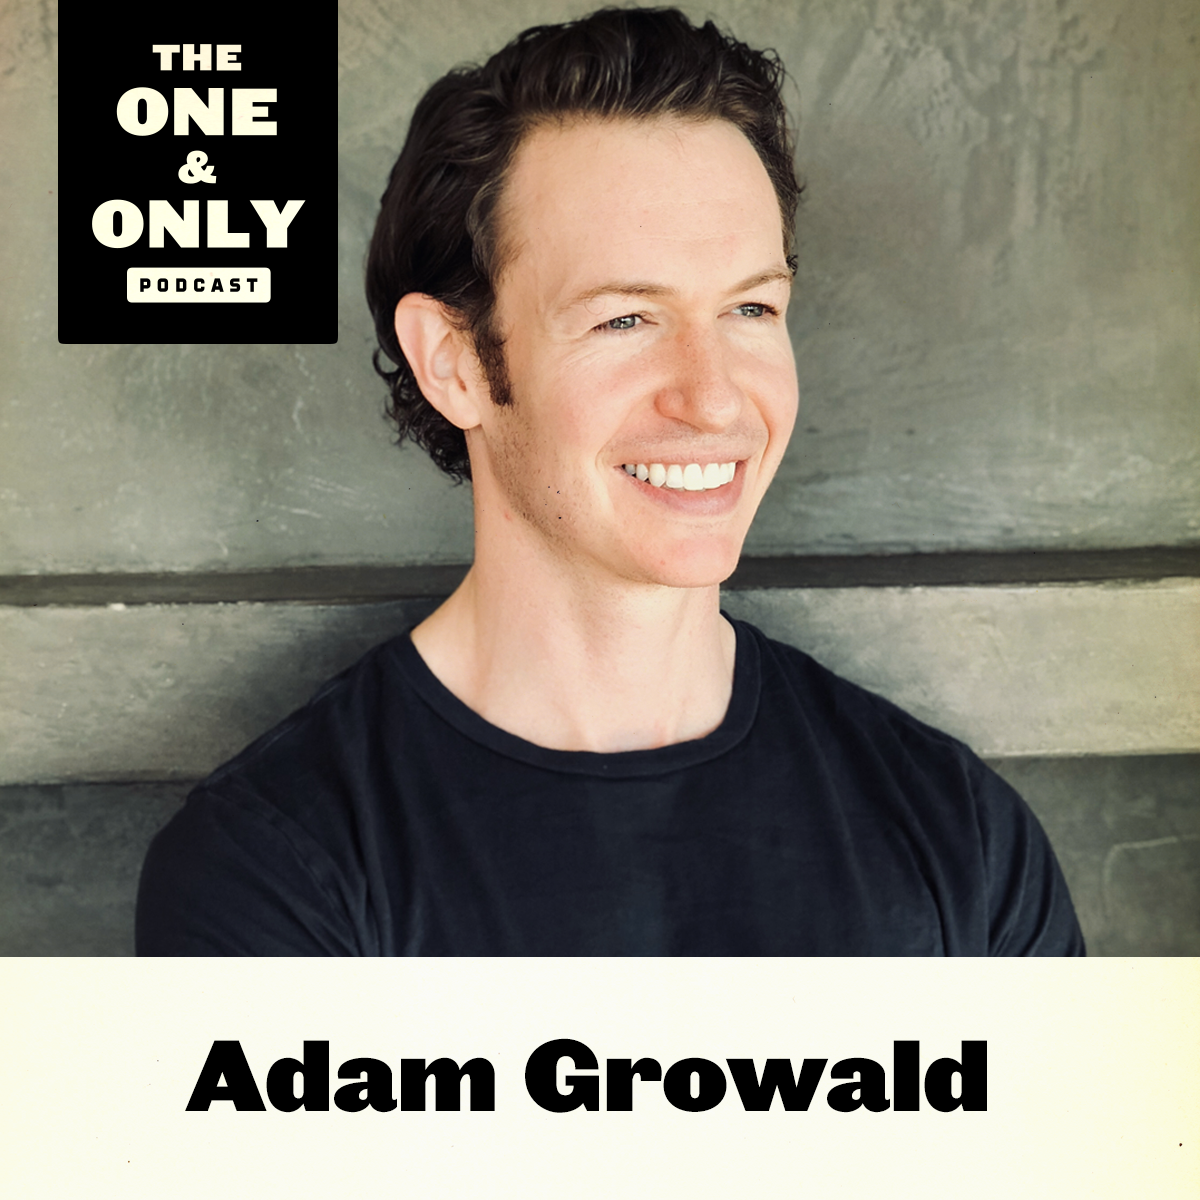 Adam Growald on The One & Only with Mark Shapiro